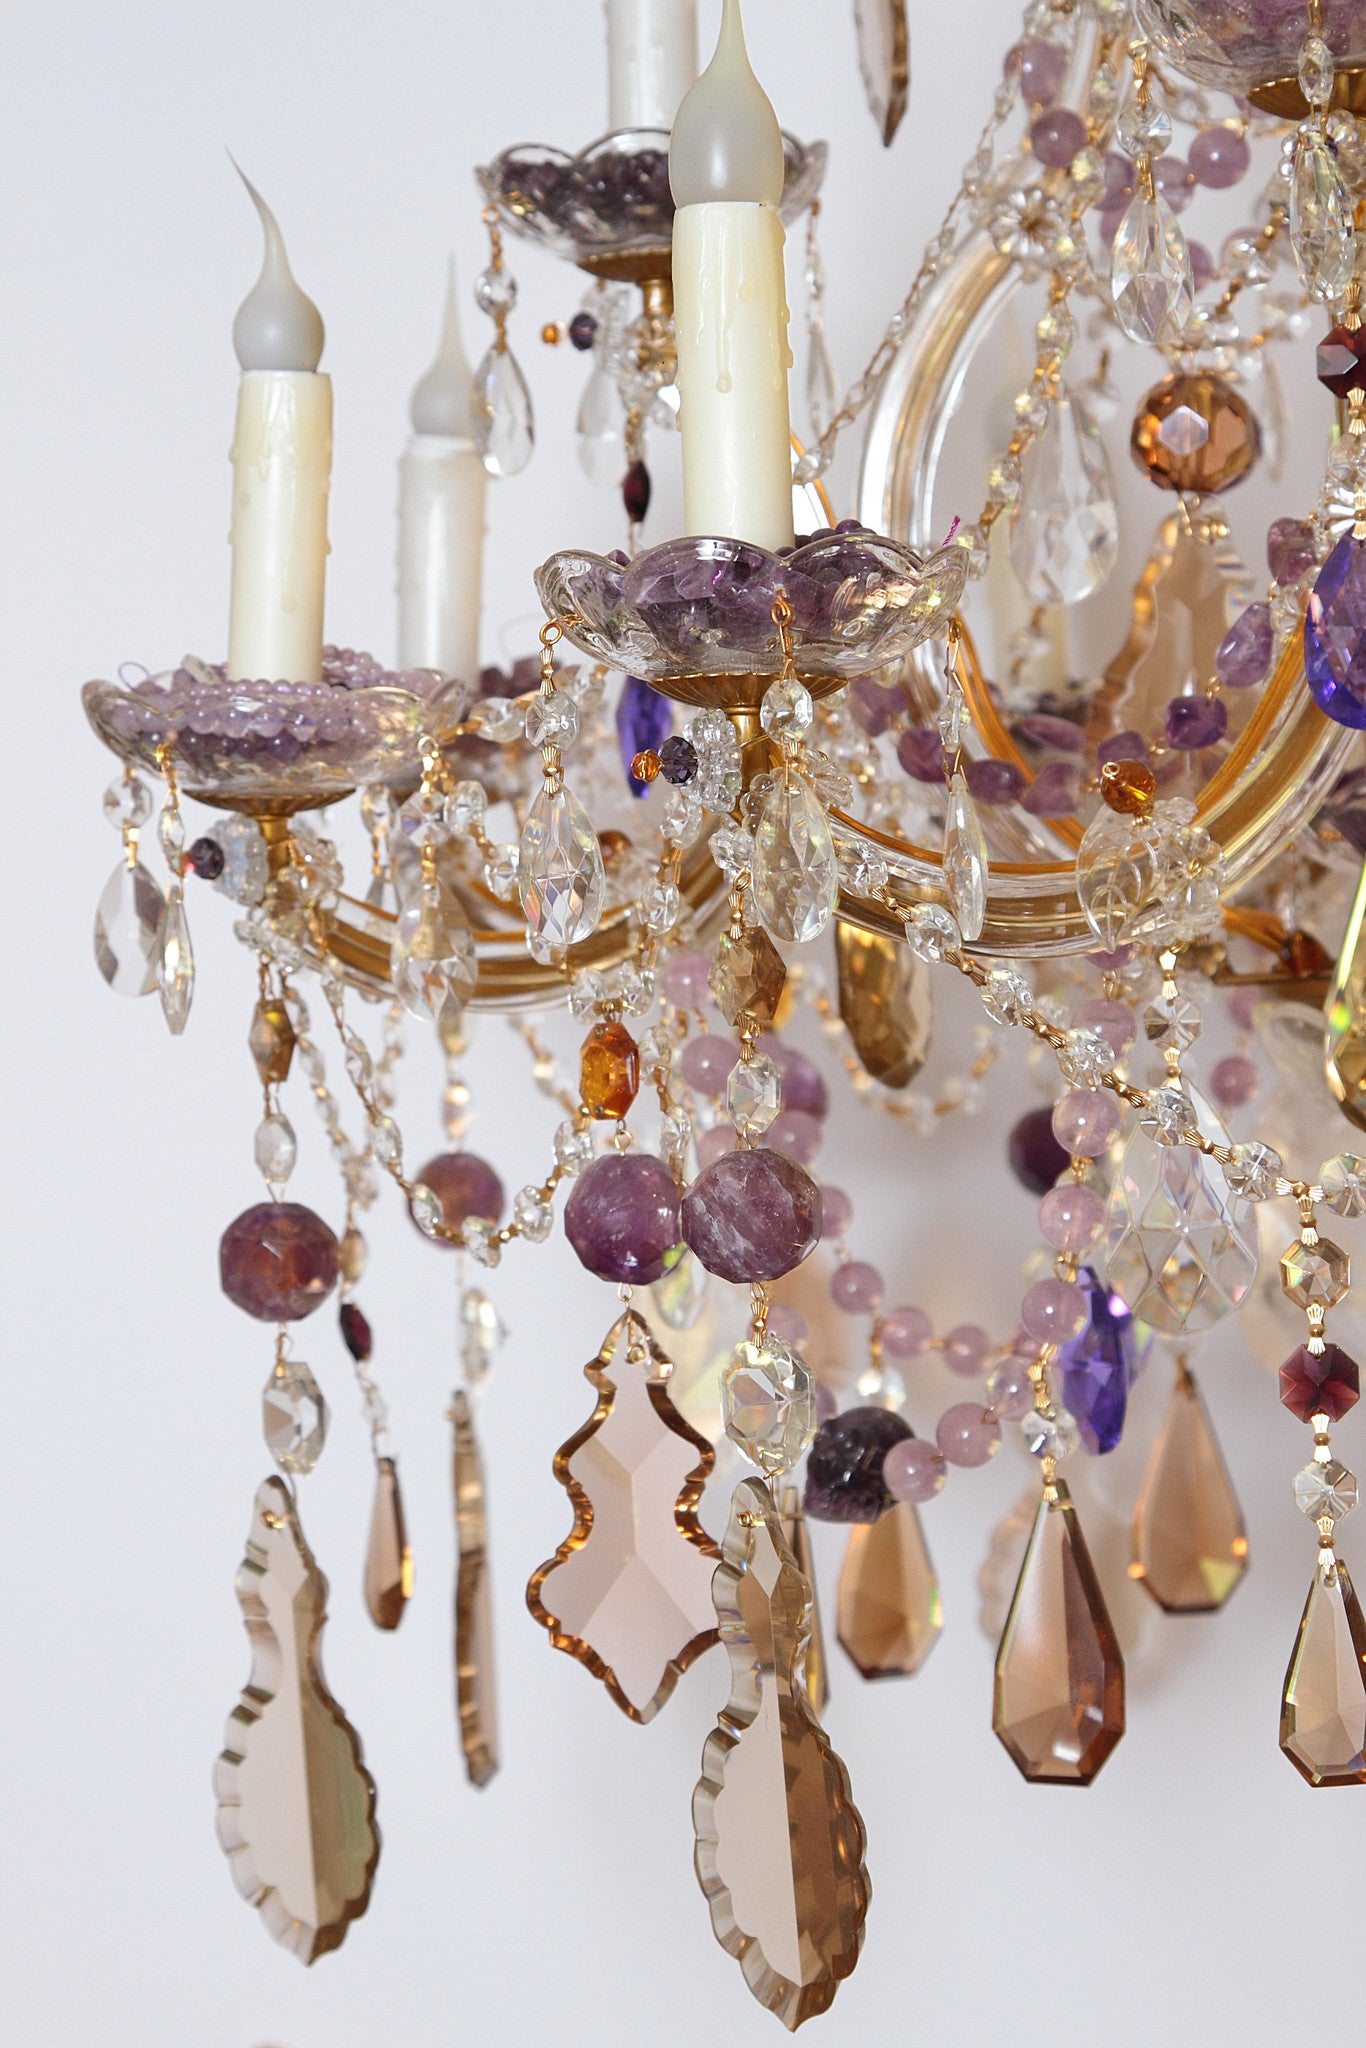 Custom Crystal and Amethyst Chandelier